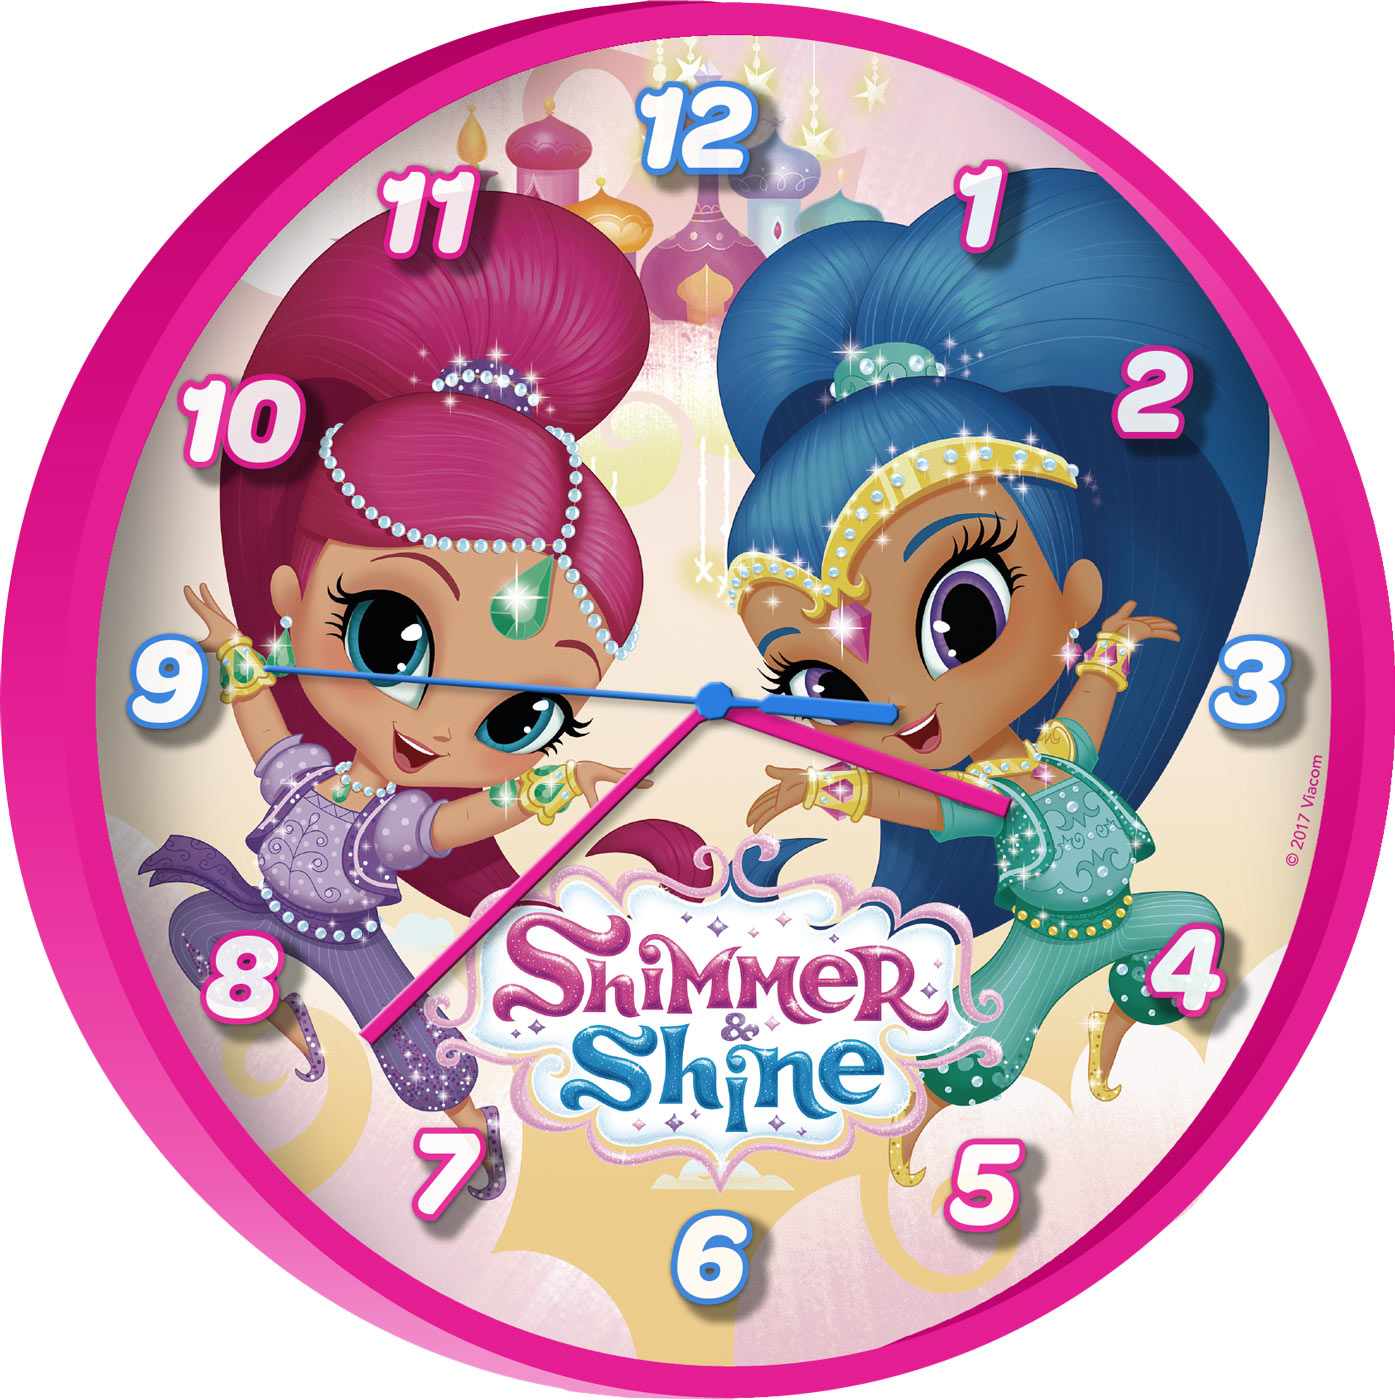 Shimmer and Shine Kids Bedroom Set – image 2